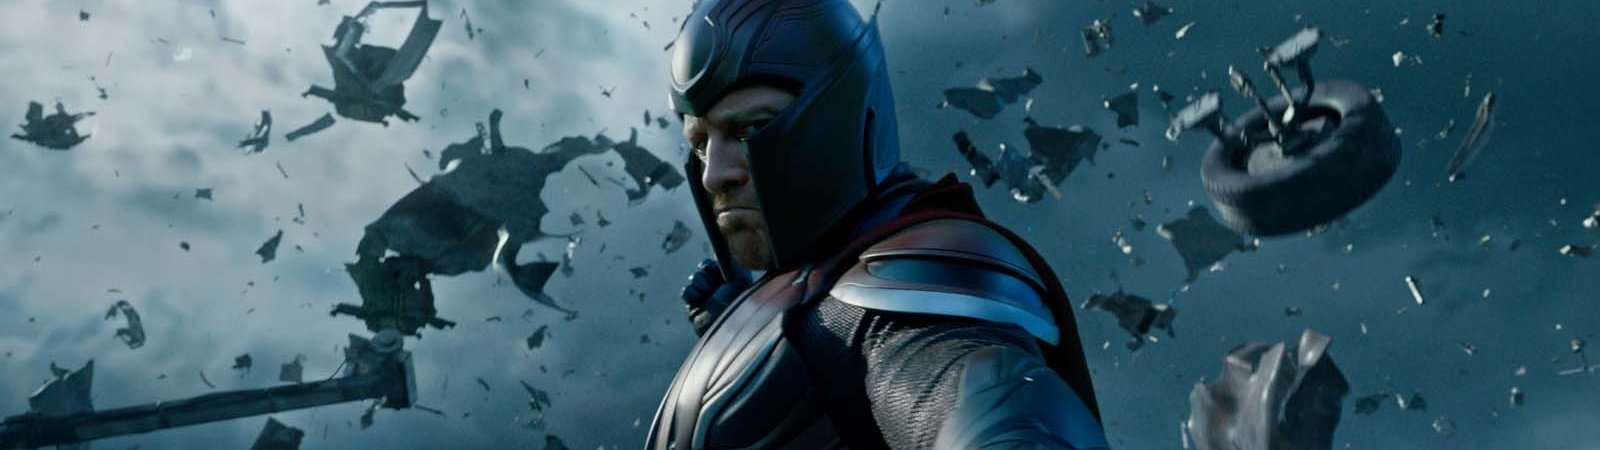 Photo du film : X-Men : Apocalypse